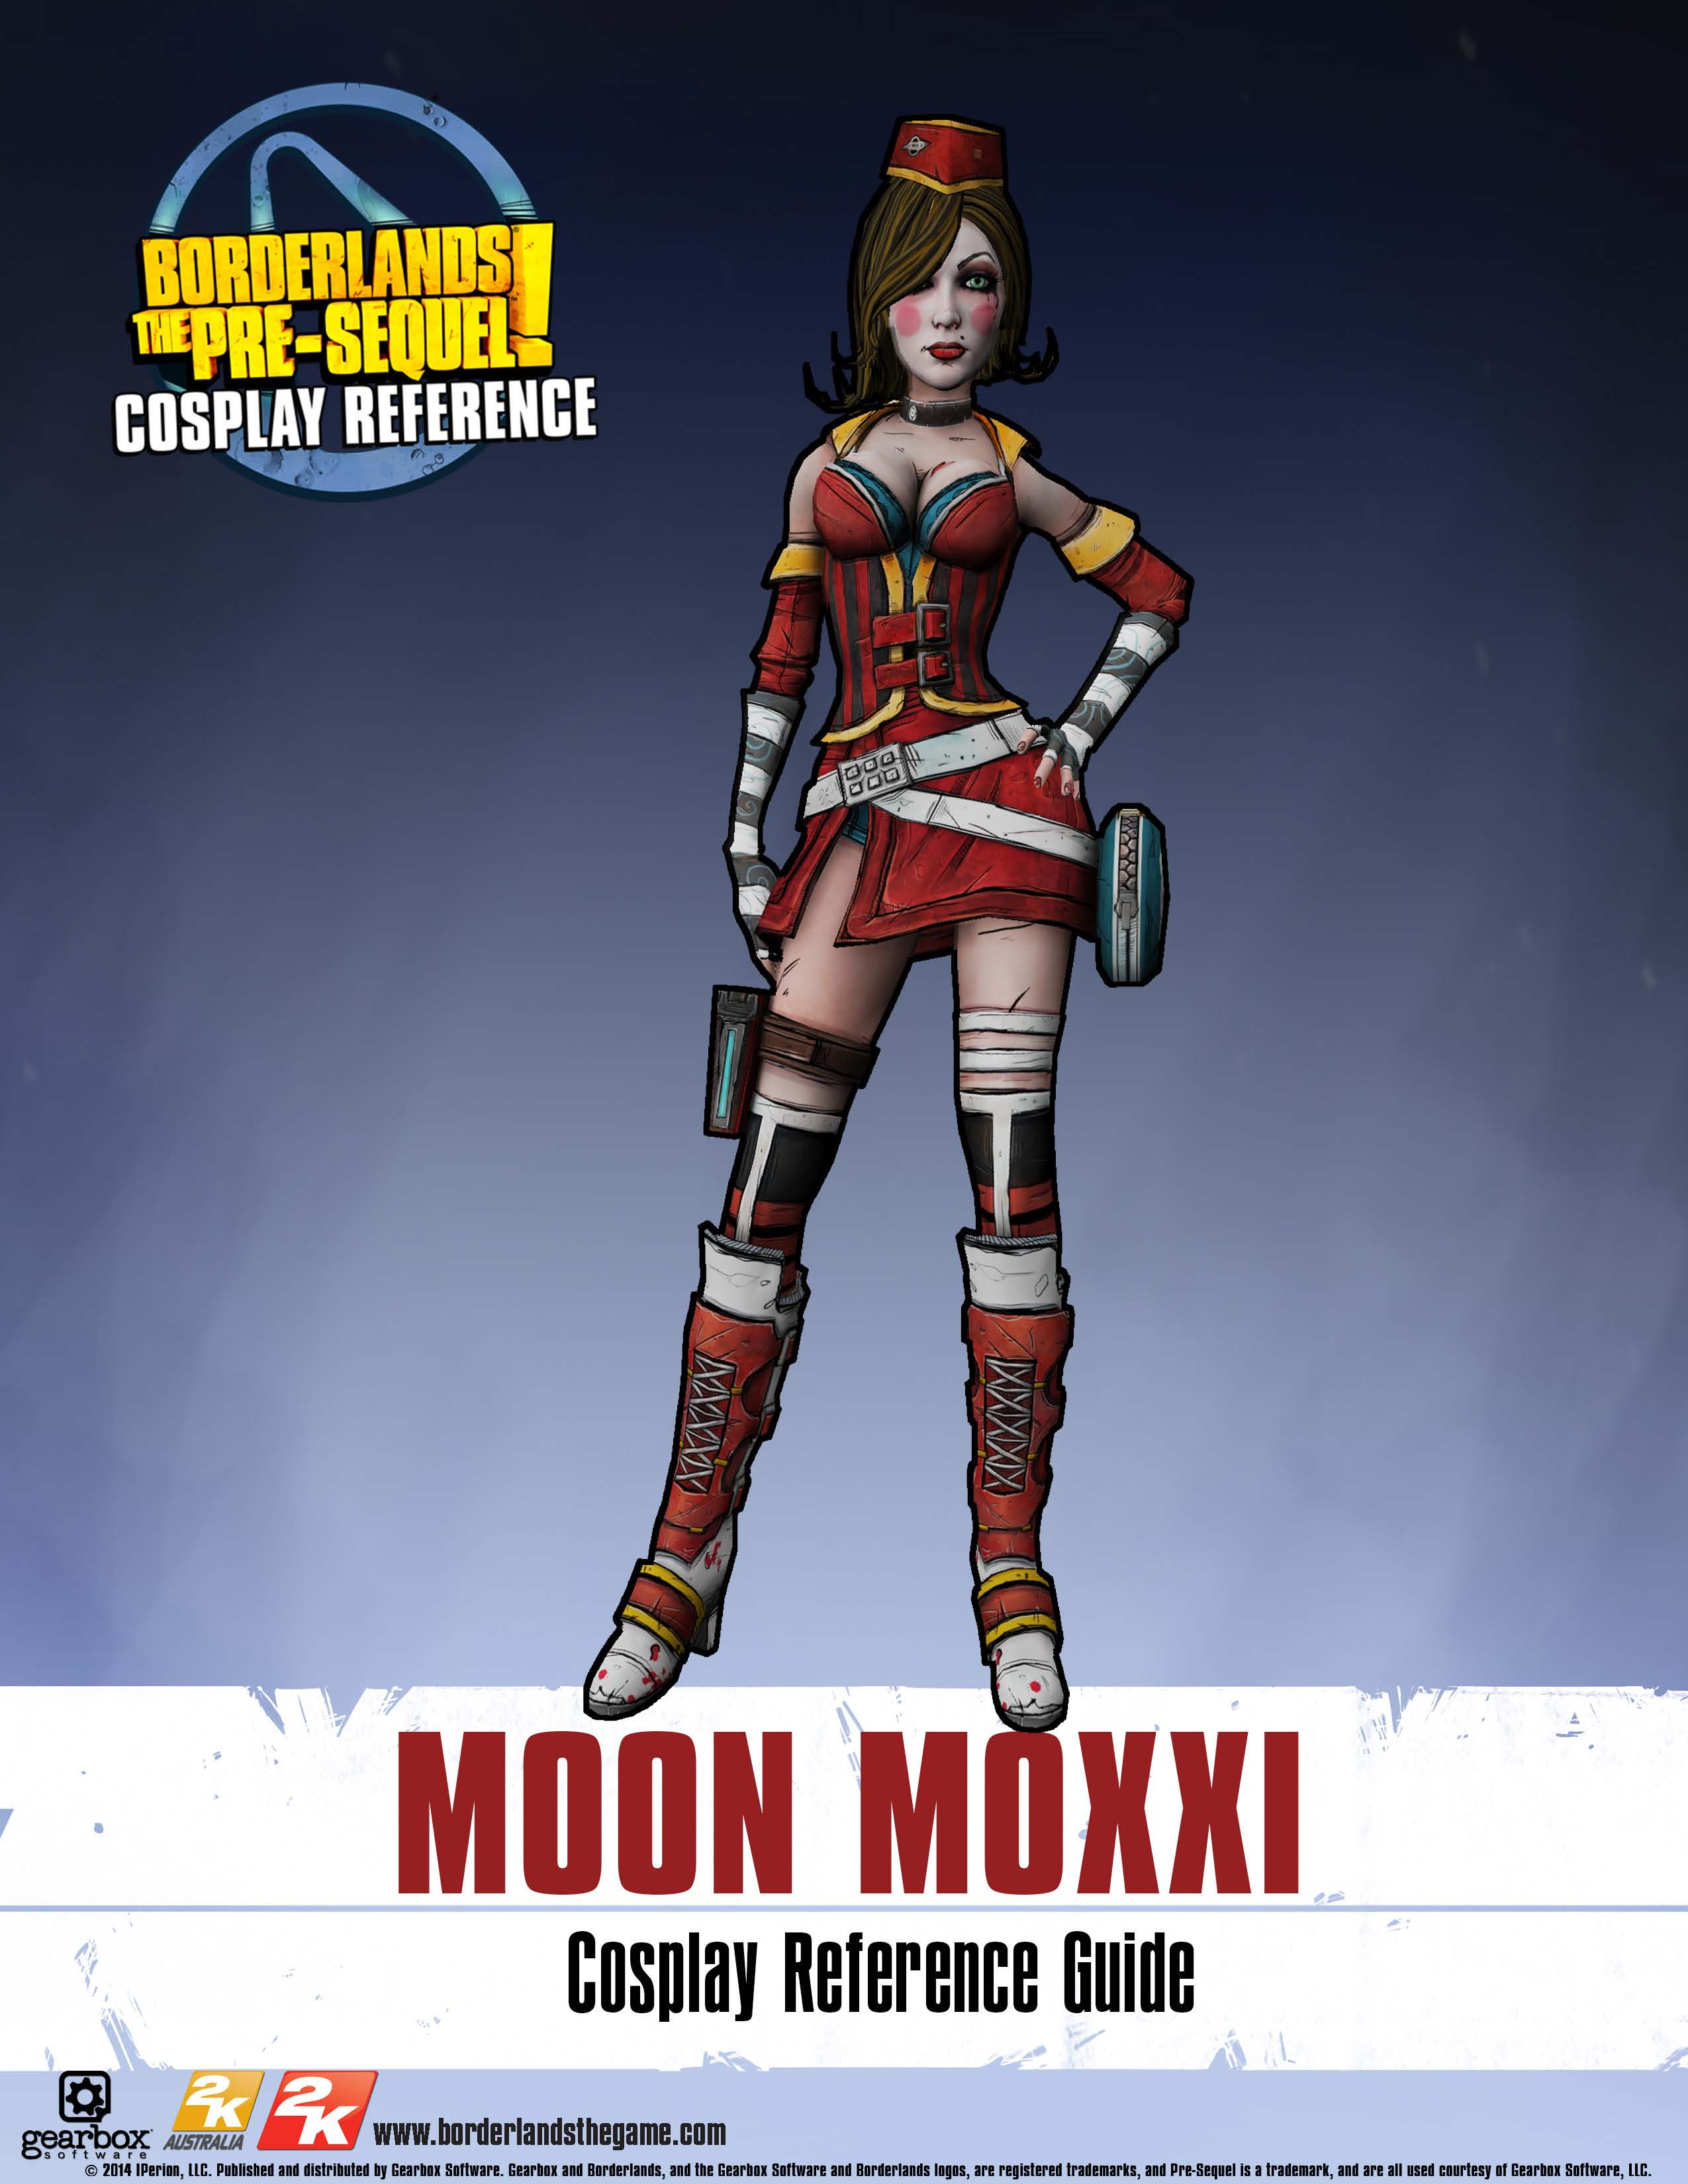 Borderlands the pre sequel moon moxxi cosplay reference guide